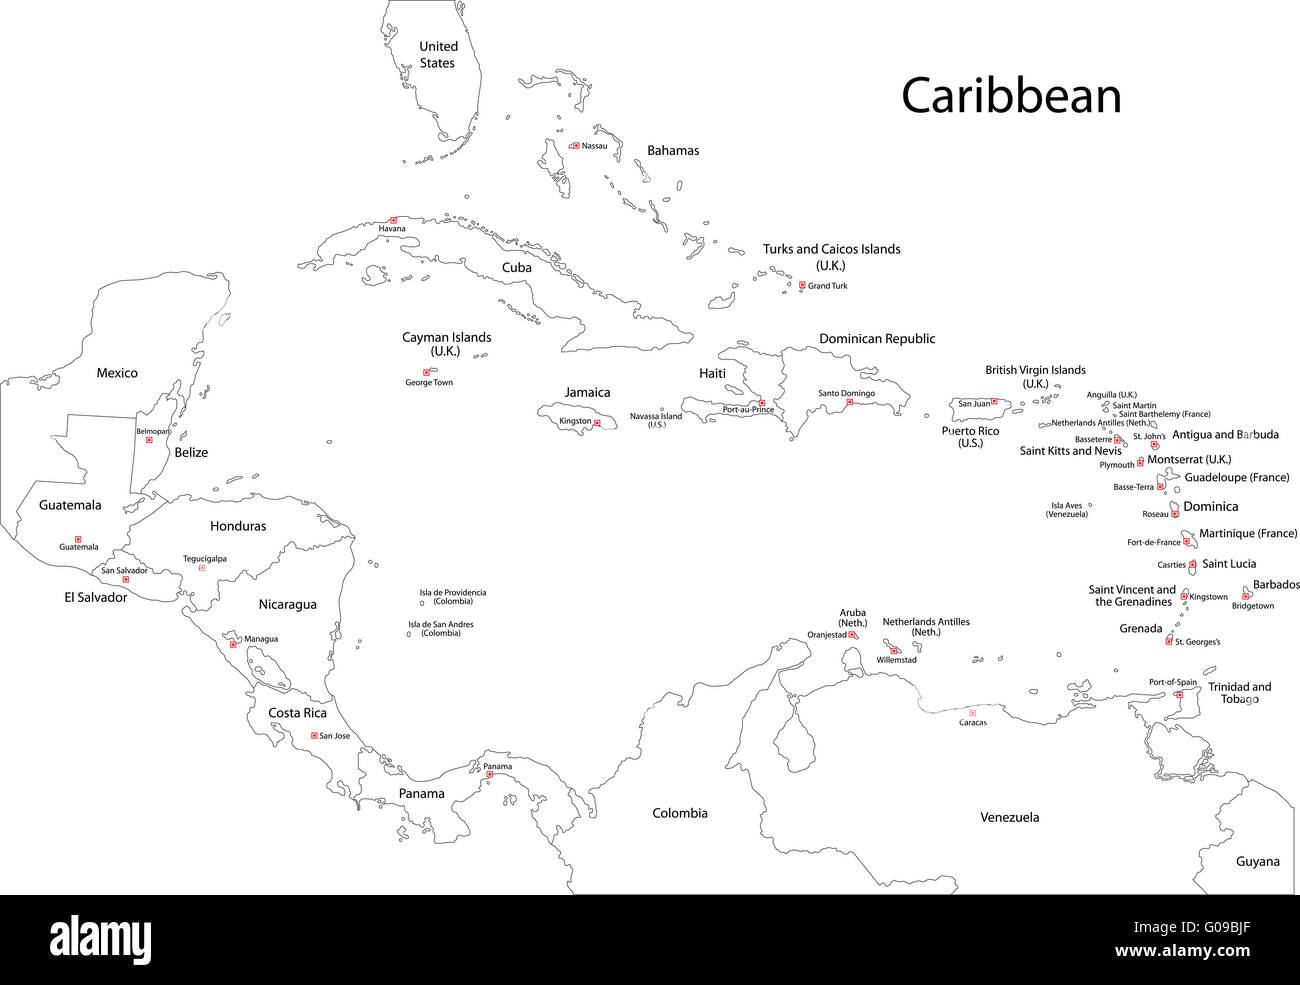 Outline Caribbean map - Stock Image